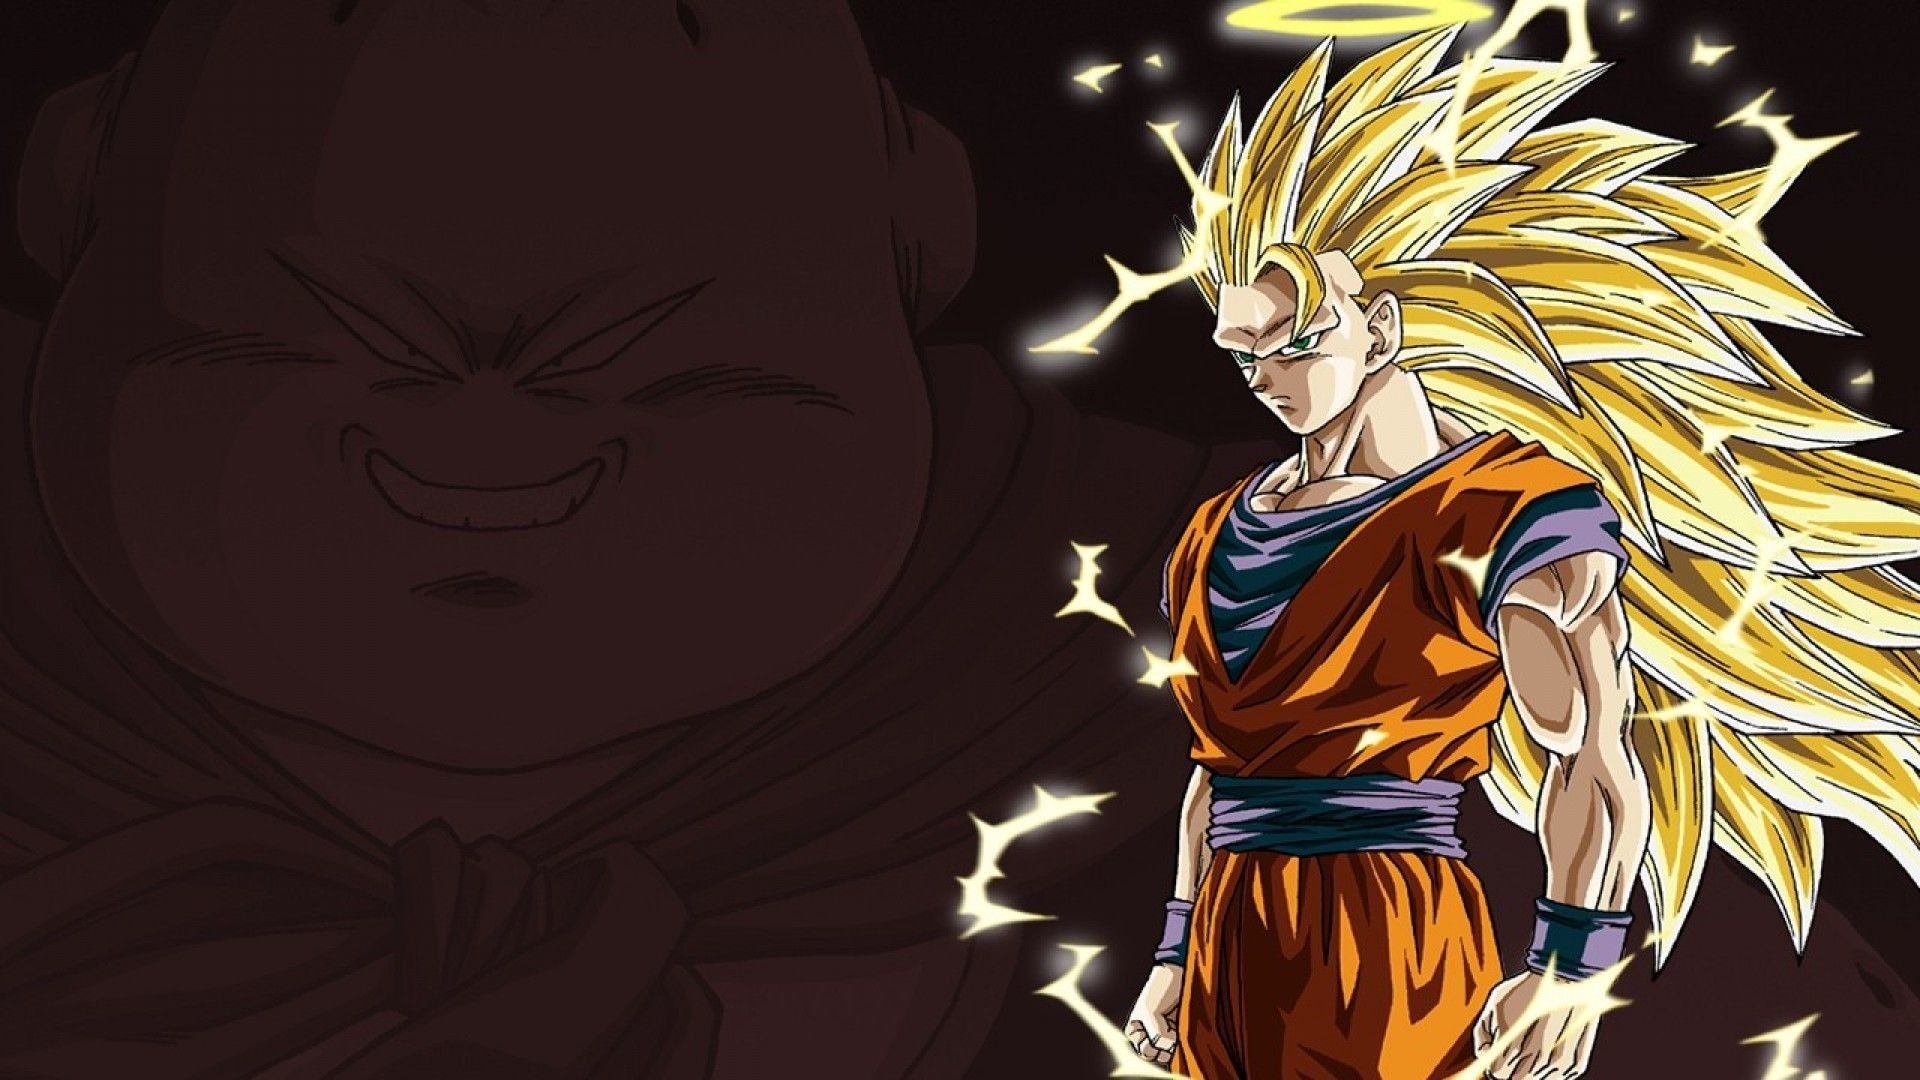 Unique Dragon Ball Super Live Wallpaper Download Di 2020 Dragon Ball Z Dragon Ball Wallpaper Lucu